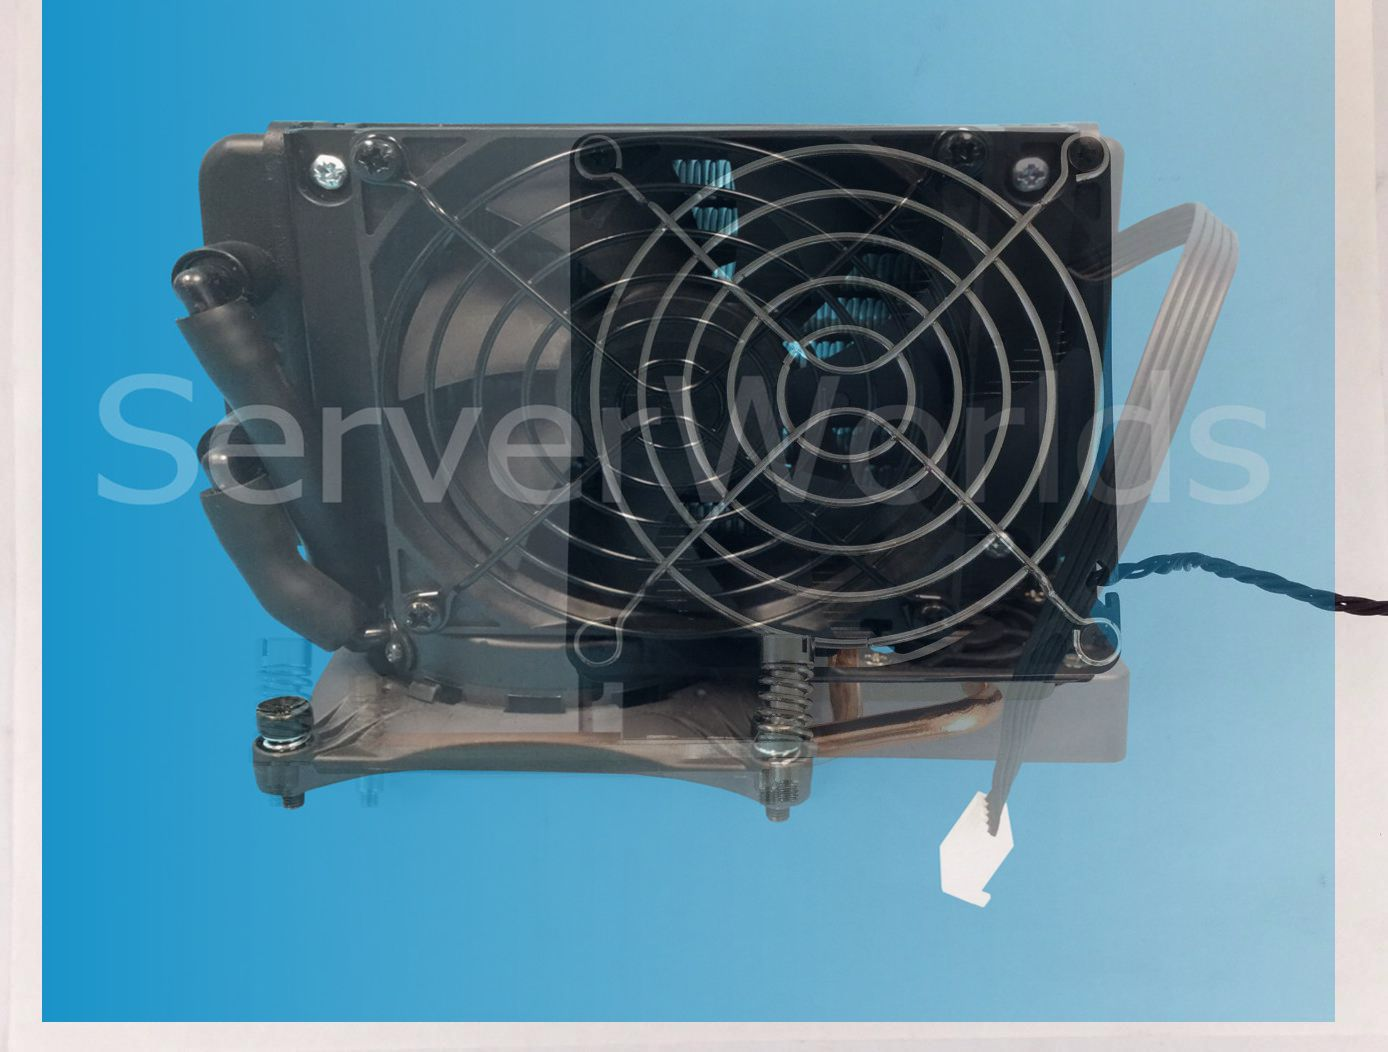 z420 Liquid cooler and Fan Heatsink overlaid_5.28.17..jpg